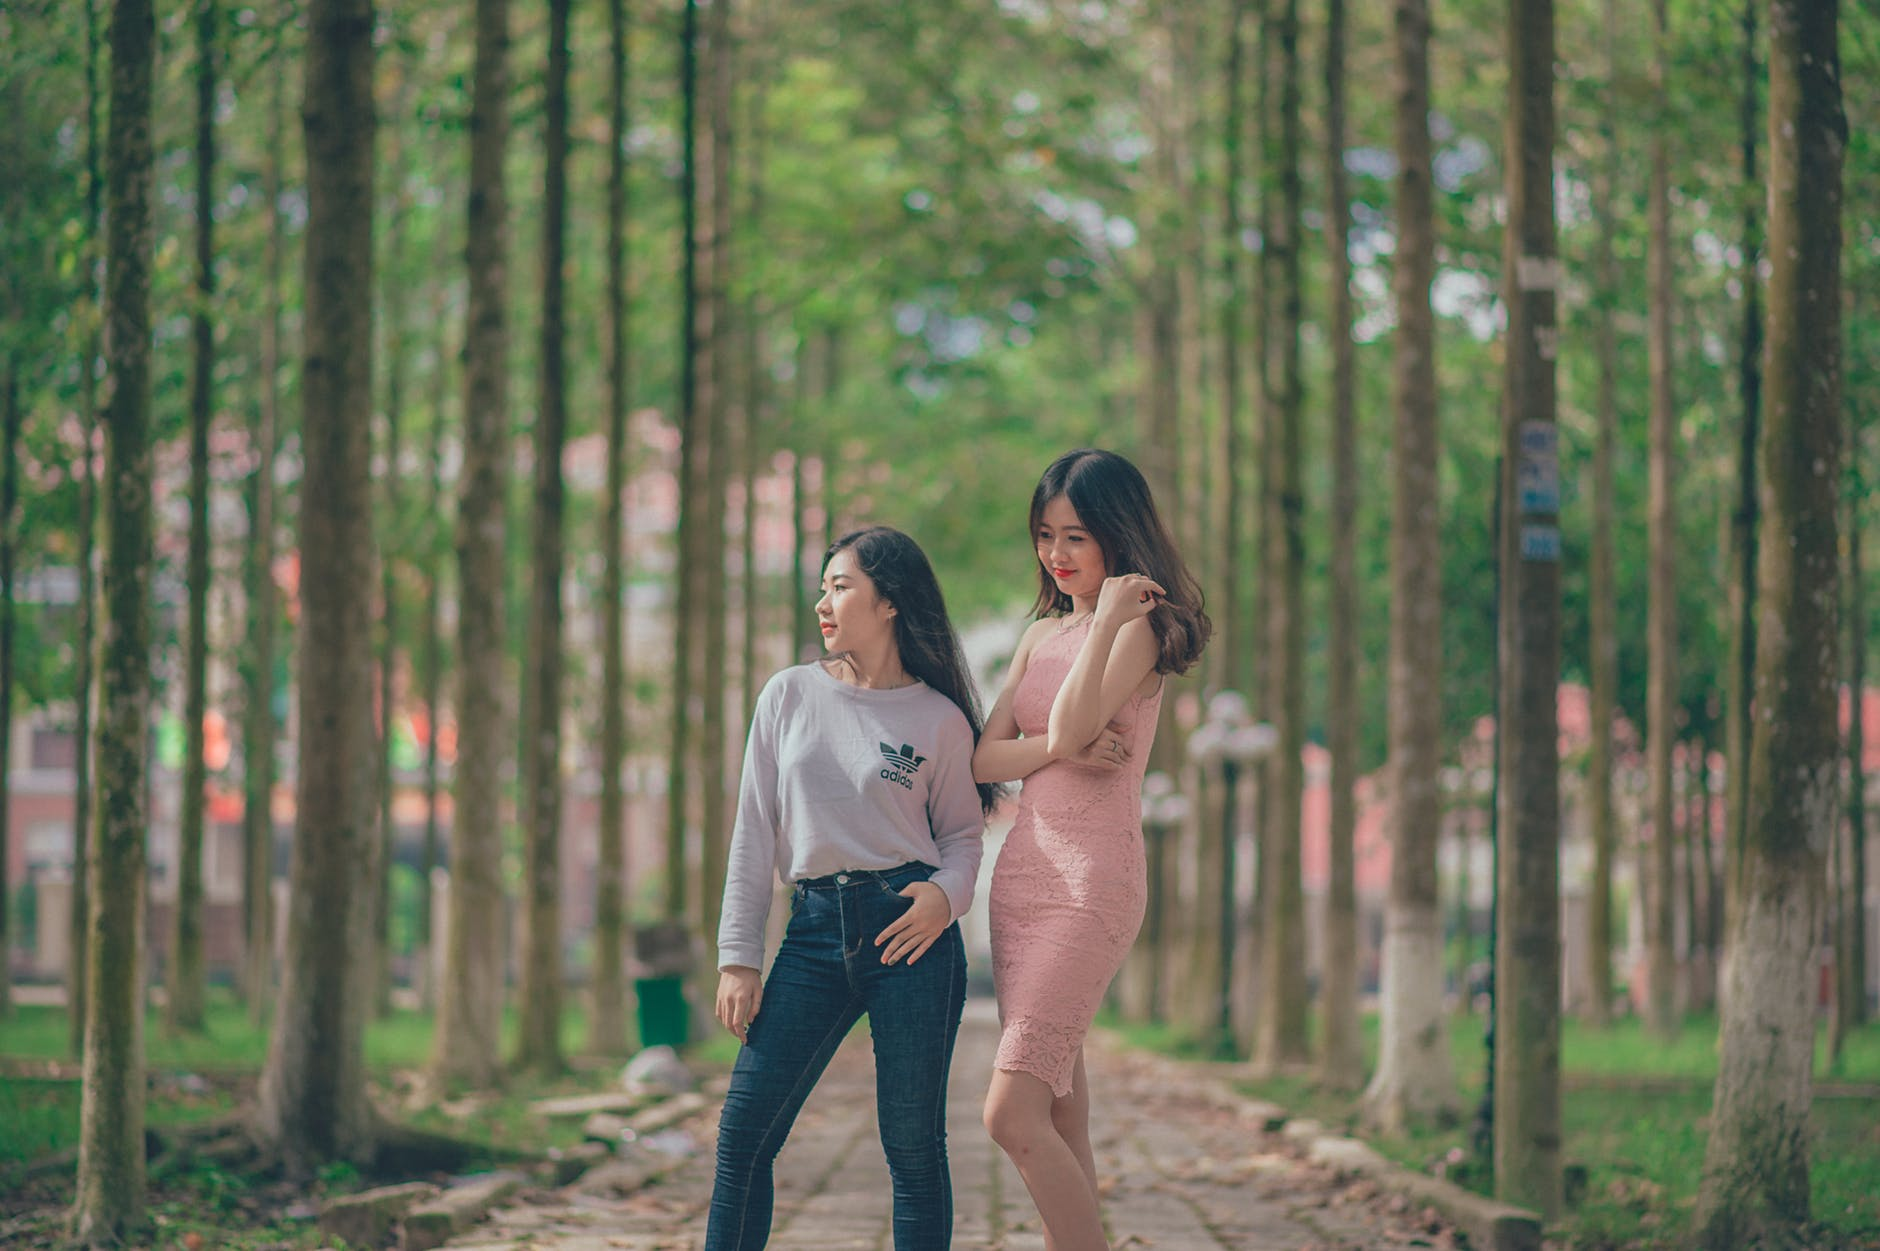 Woman in pencil dress beside woman in gray sweatshirt and blue jeans standing on pathway photo